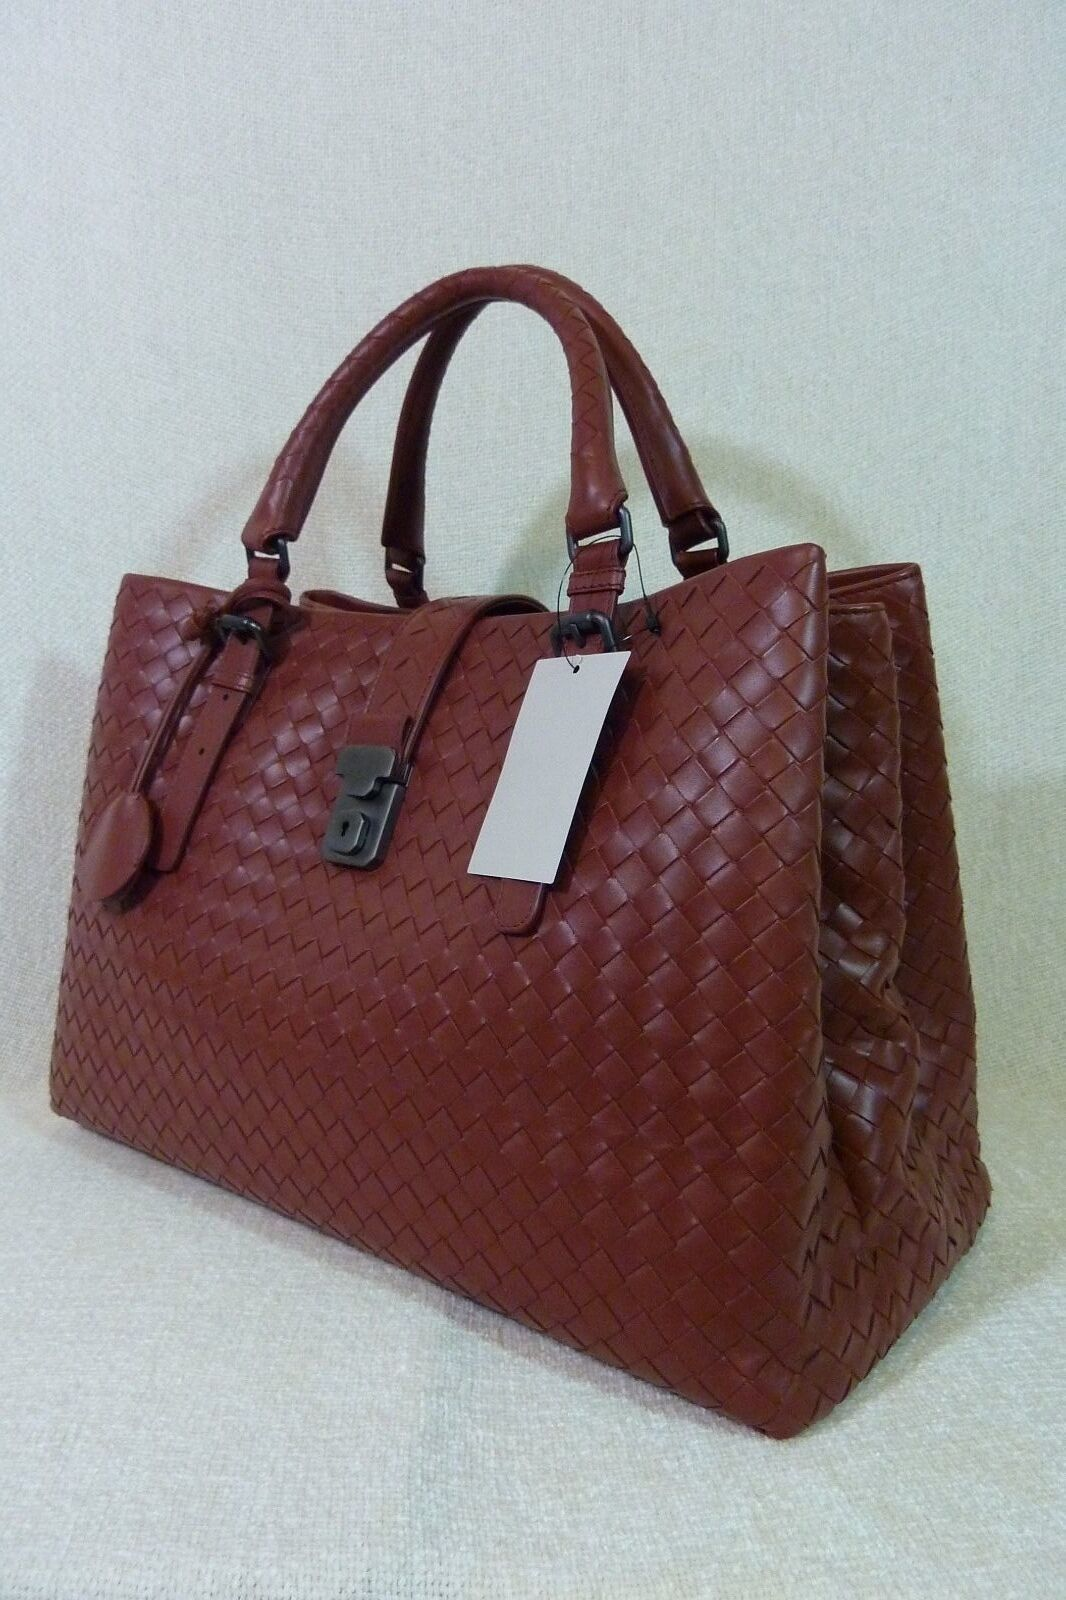 AUTH NWT Bottega Veneta Medium Roma Bag In Russet Intrecciato Calf Leather image 5